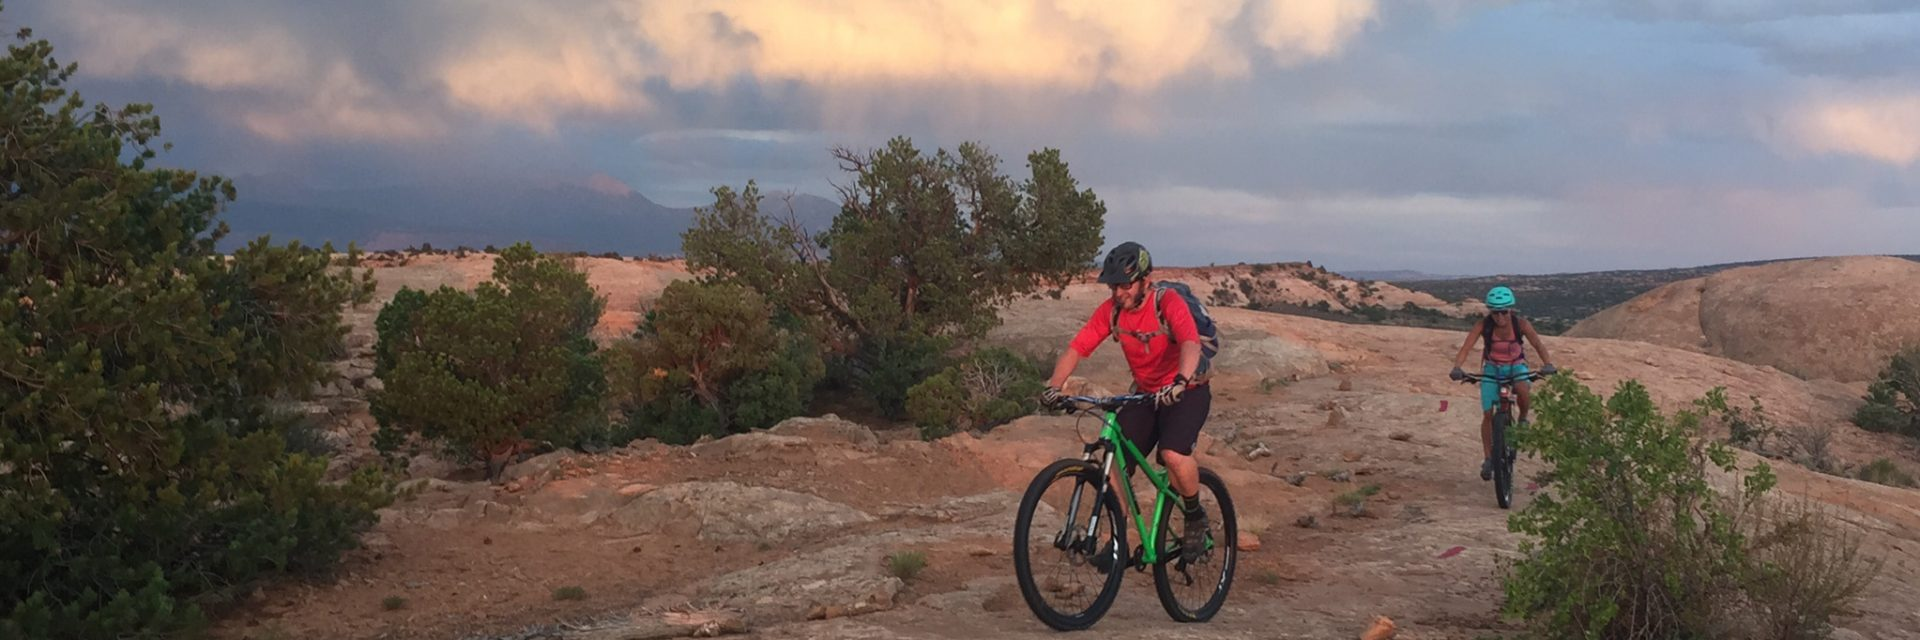 Sunset and alpenglow on the La Sal Mts, behind Rocky Tops, Navajo Rocks Trail, Moab UT